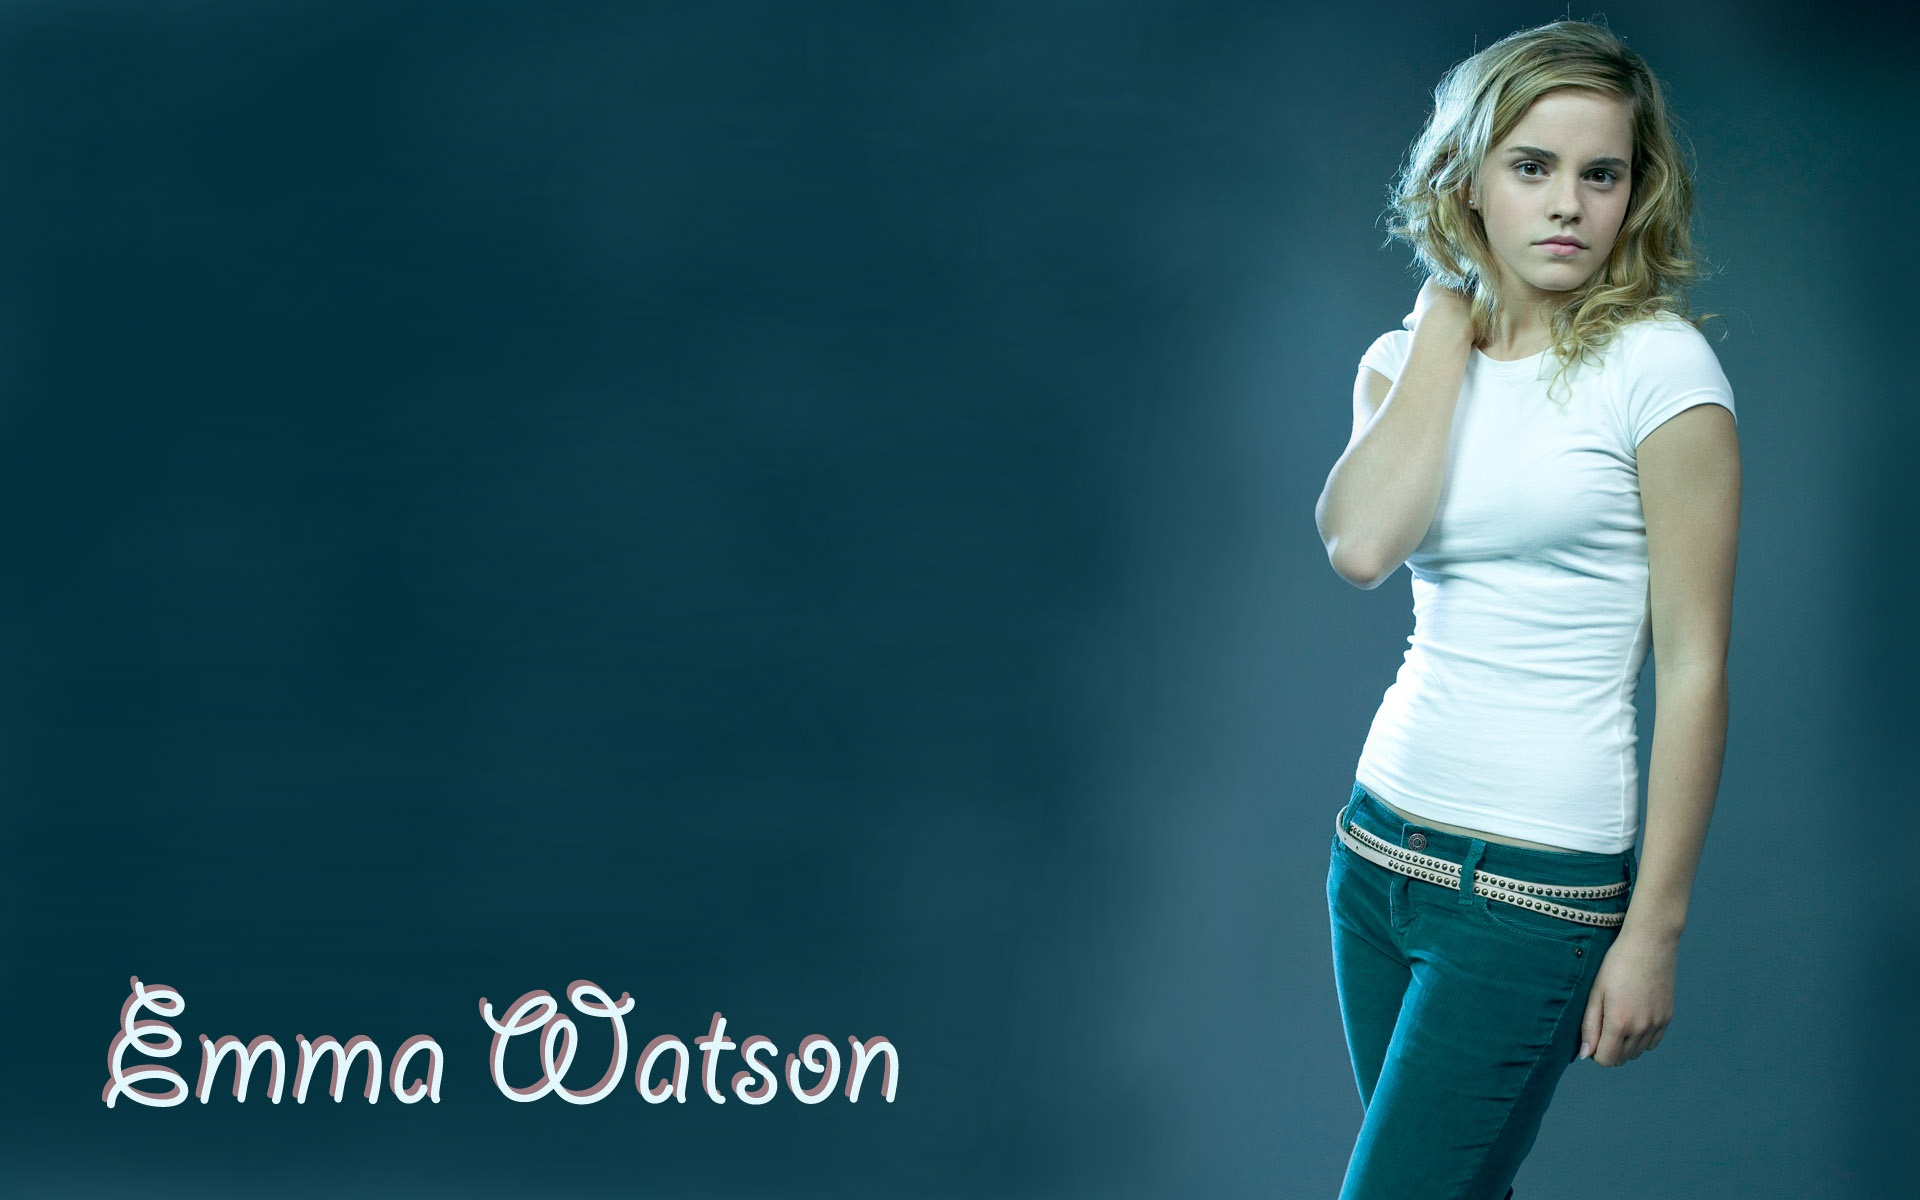 Emma Watson Beautiful In Jeans